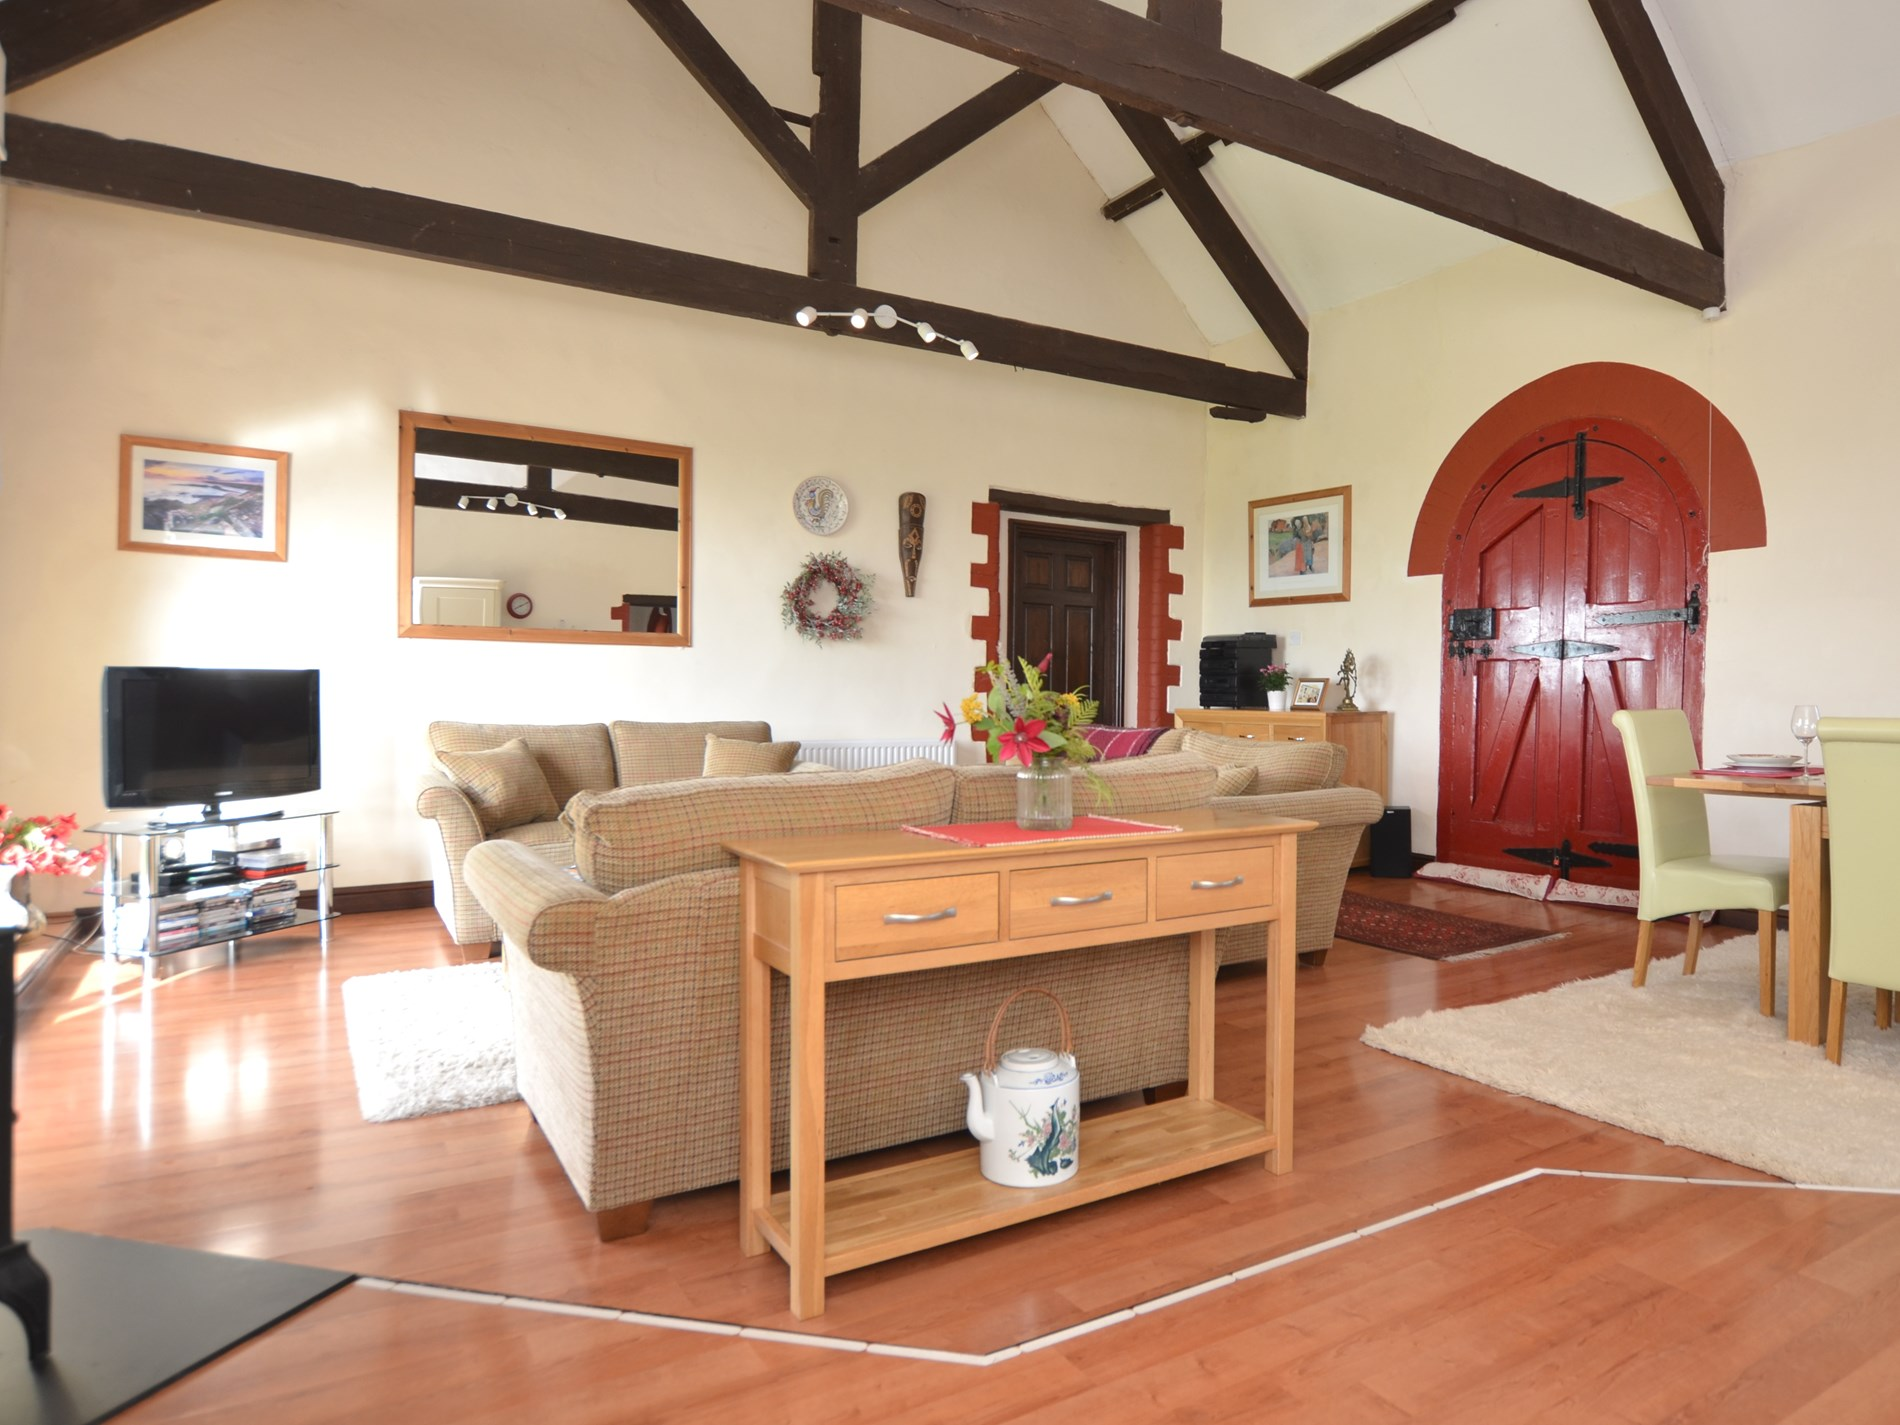 Stunning vaulted ceiling and original beams